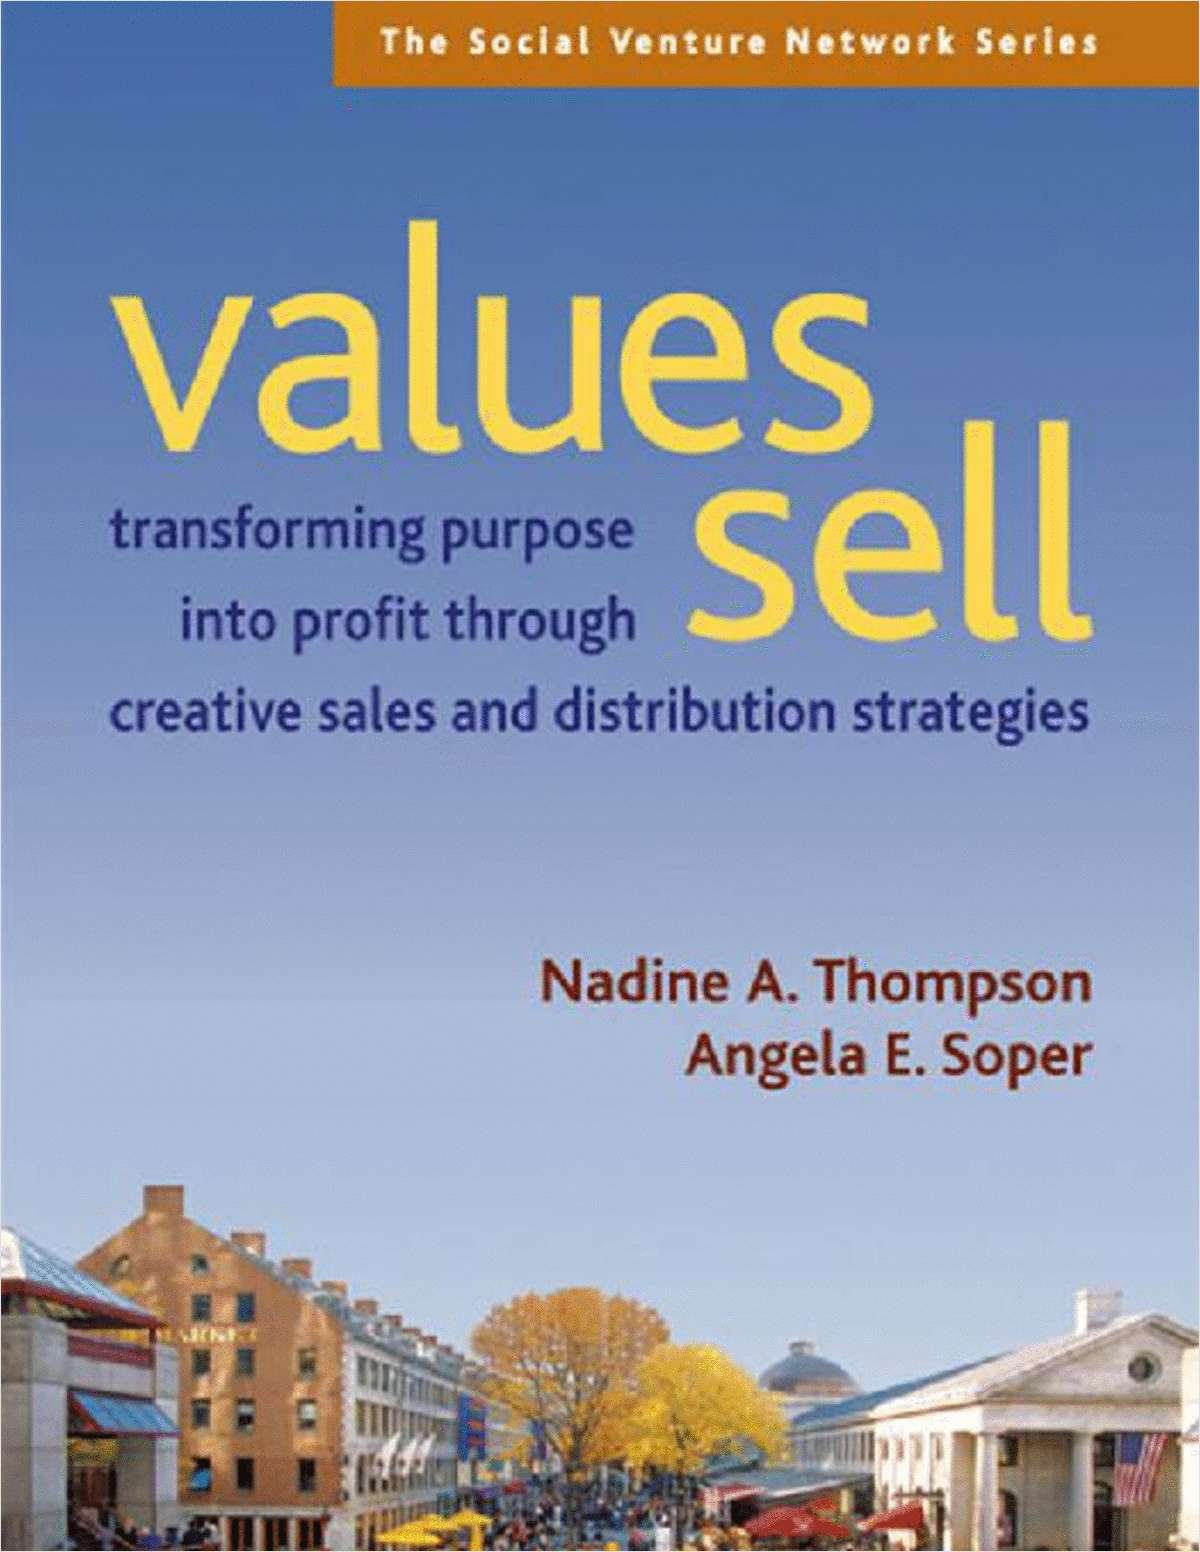 Values Sell (An 85 Page Excerpt)